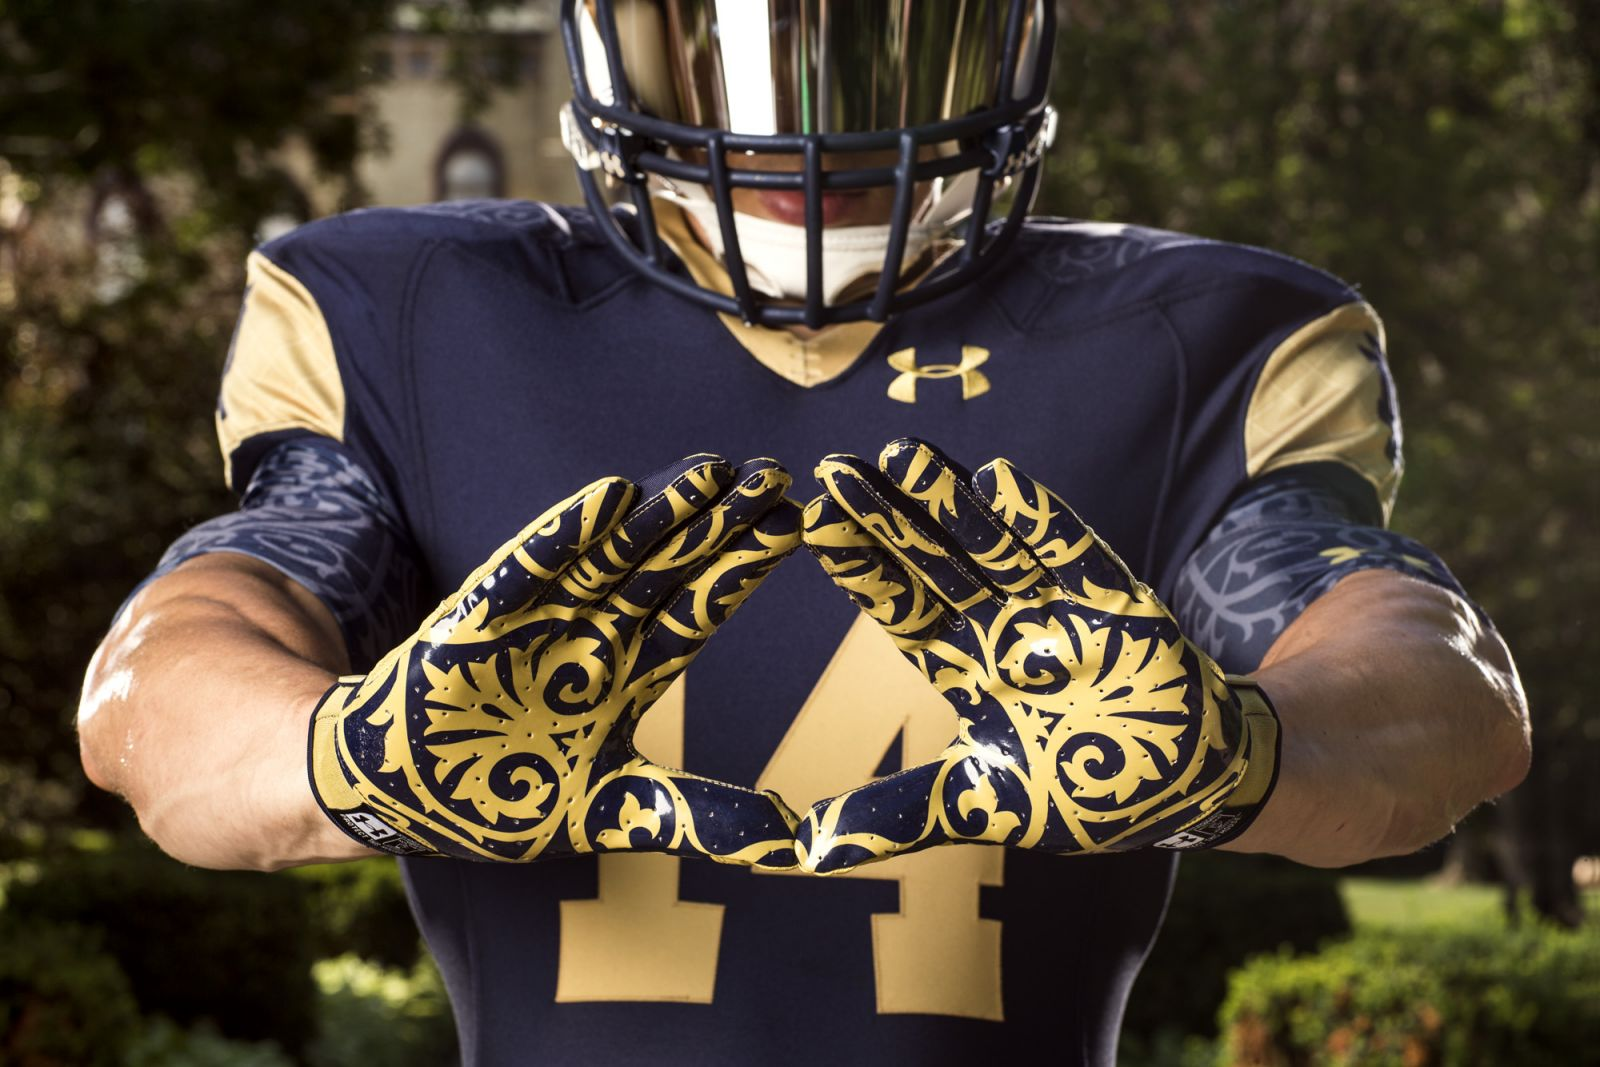 Notre Dame uniforms designed by Under Armour